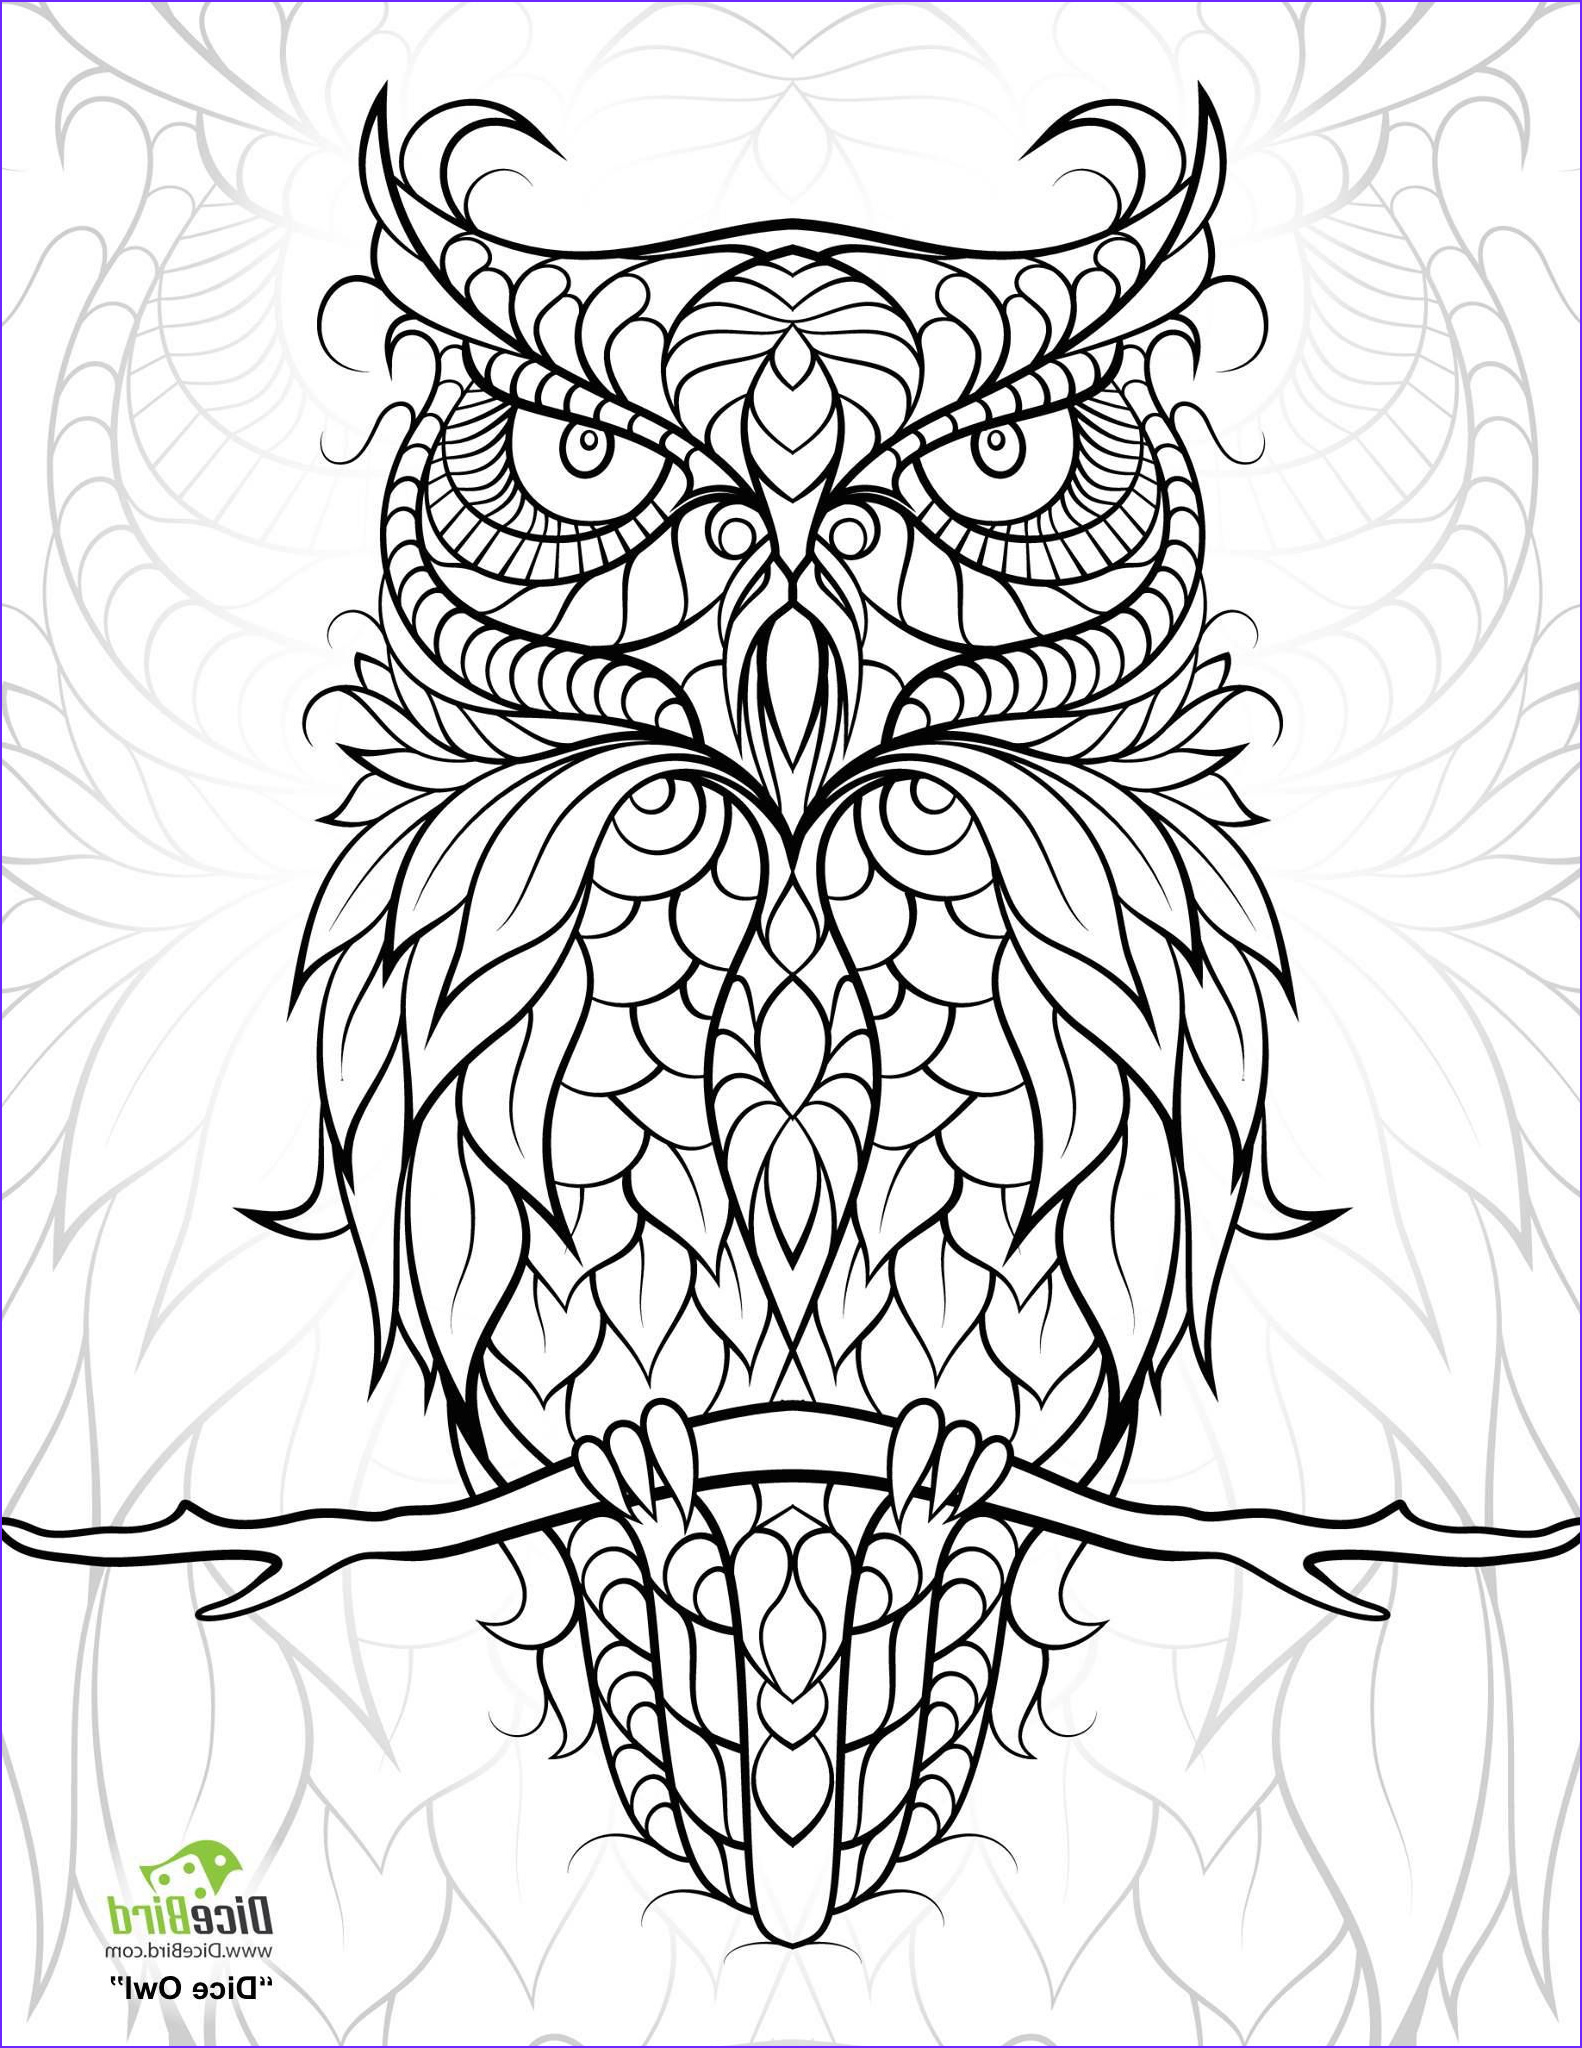 Coloring Book Owl Cool Gallery Diceowl Free Printable Adult Coloring Pages